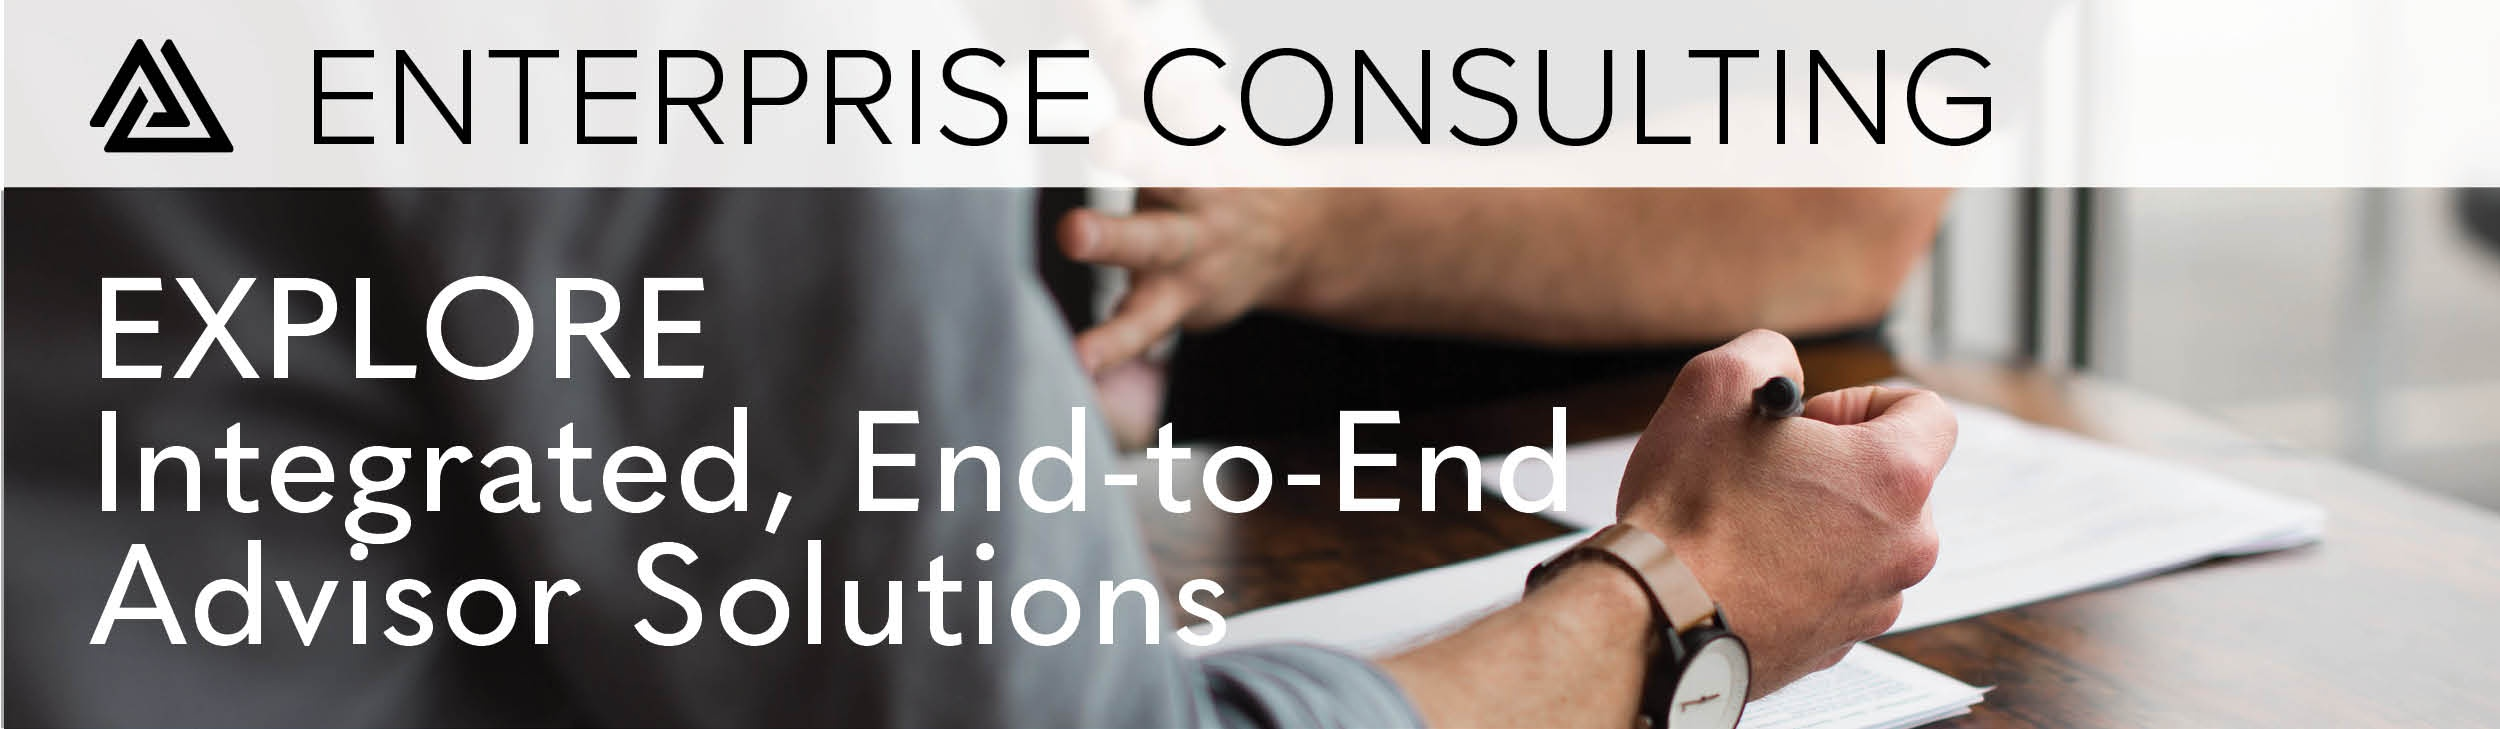 Explore Advisor Solutions with FPT Enterprise Consulting